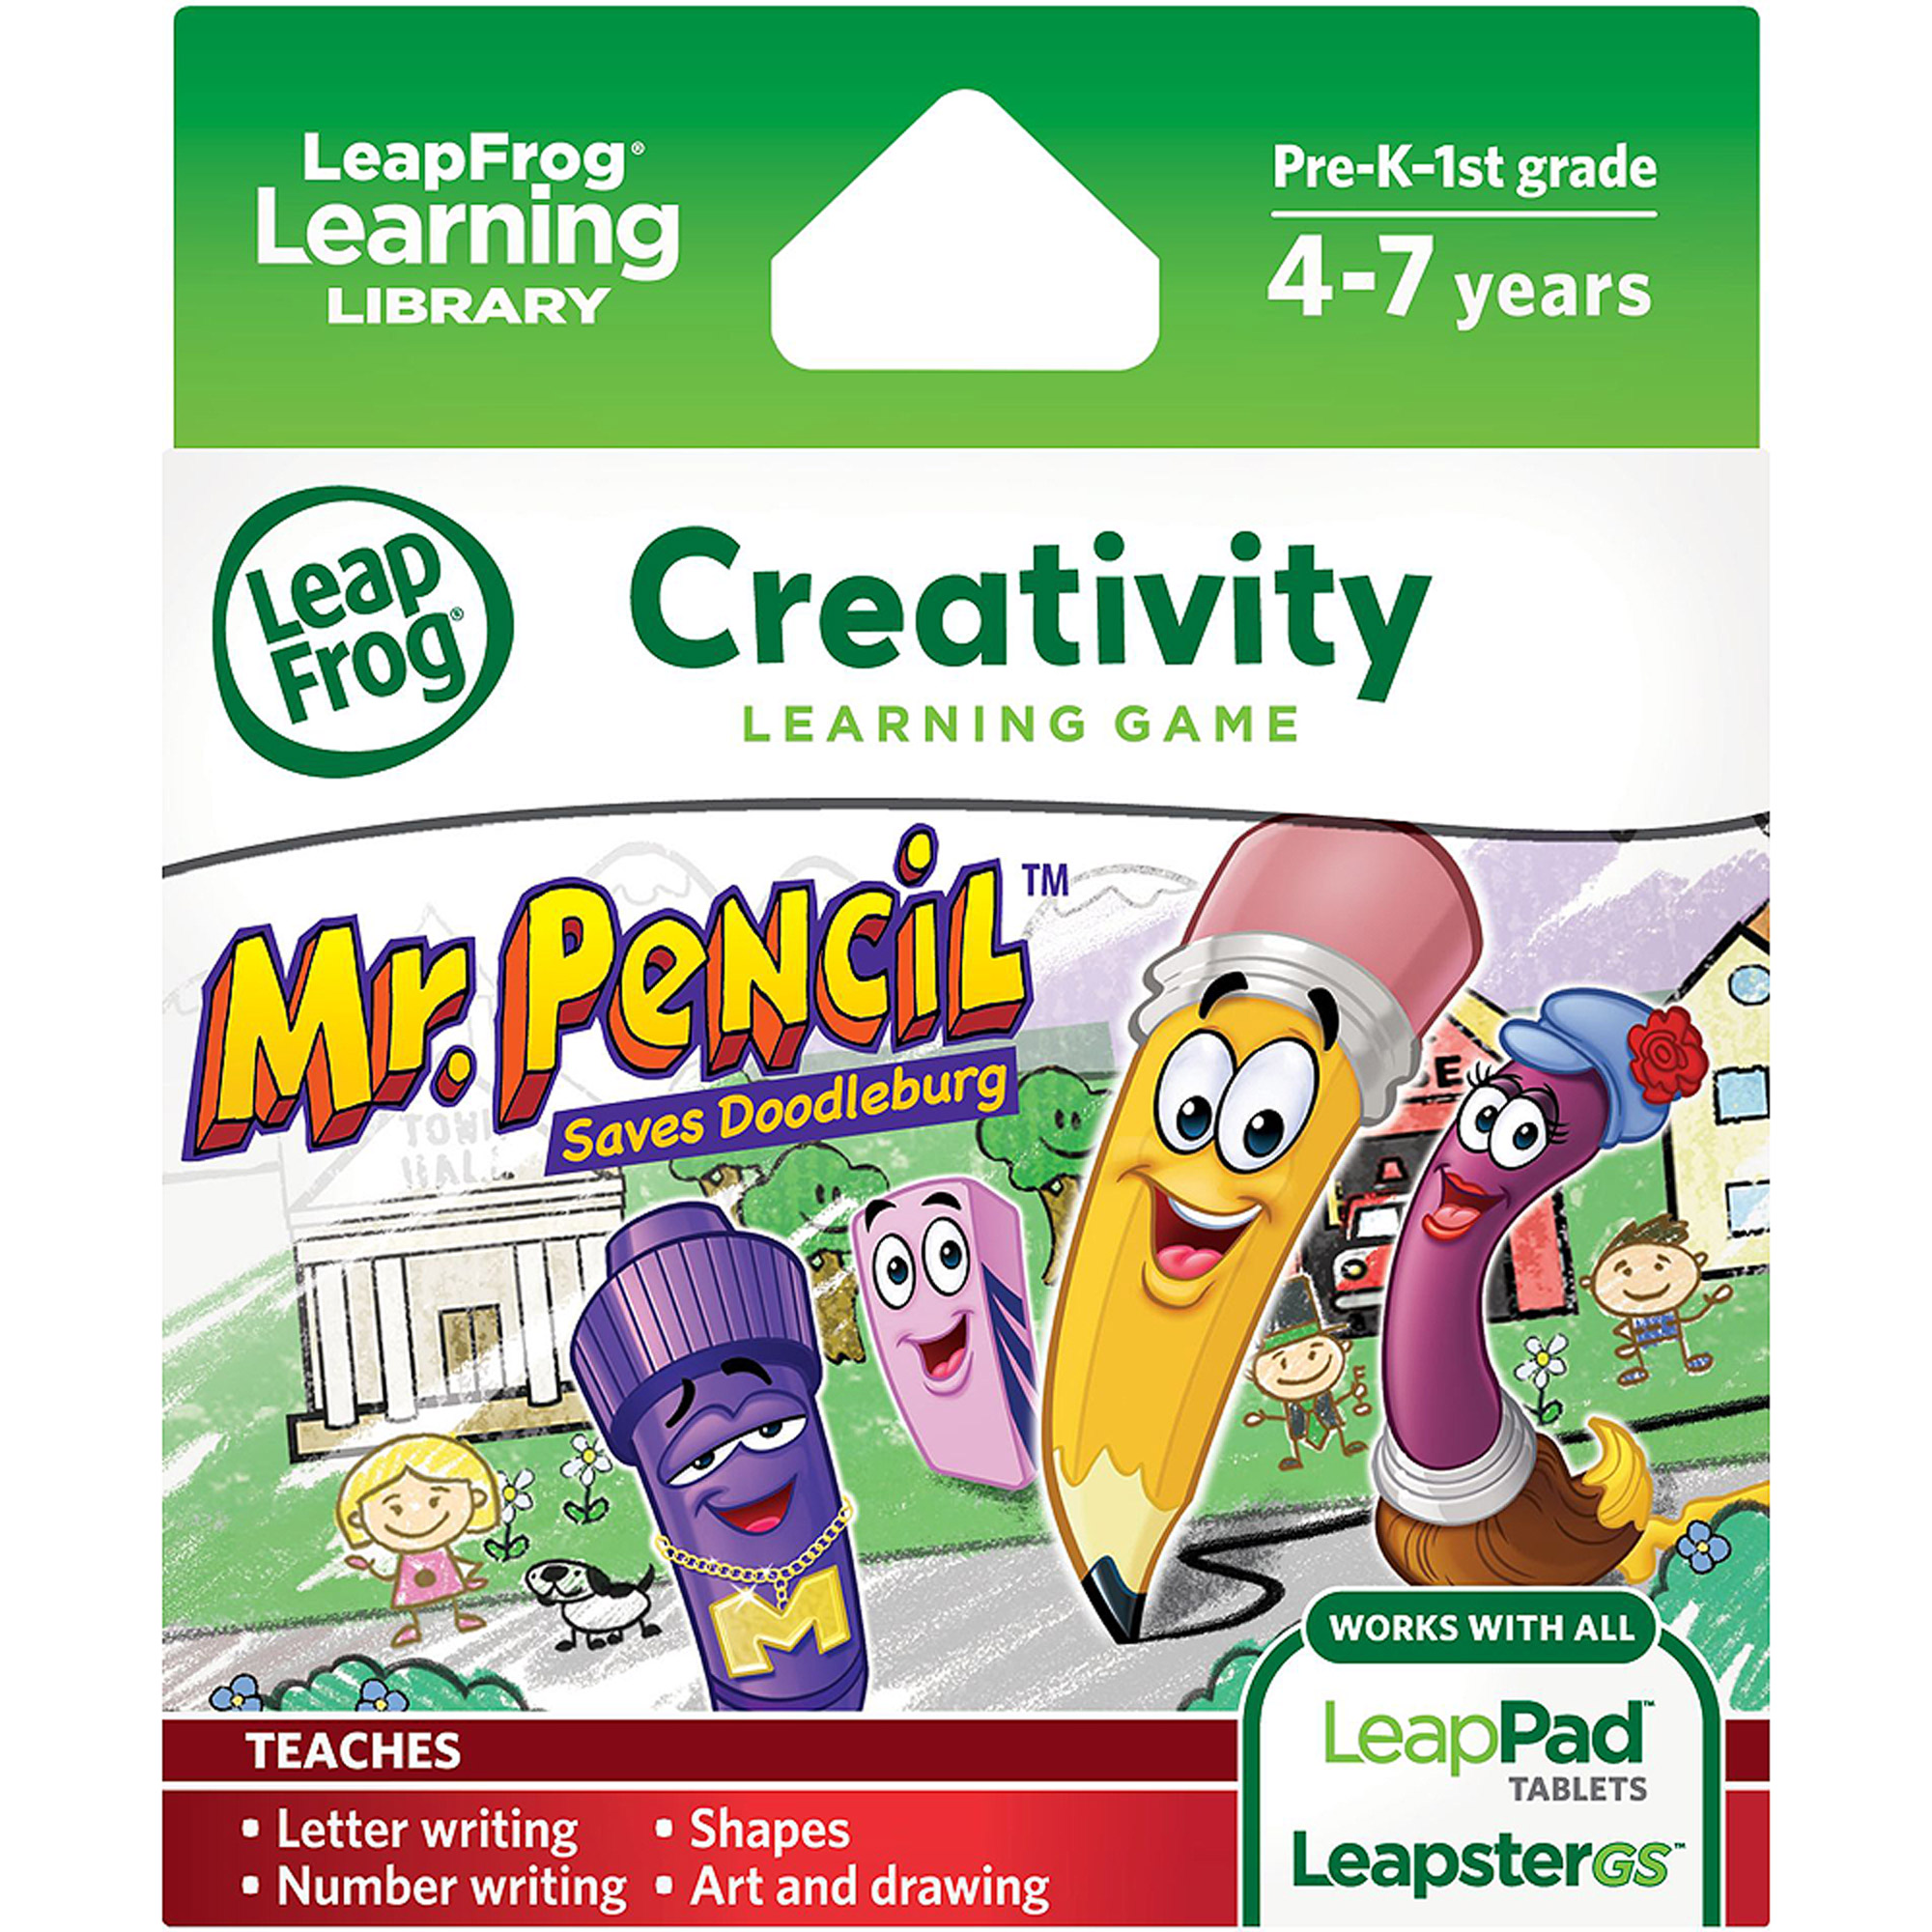 LeapFrog Explorer & LeapPad Learning Game: Mr. Pencil Saves Doodleburg